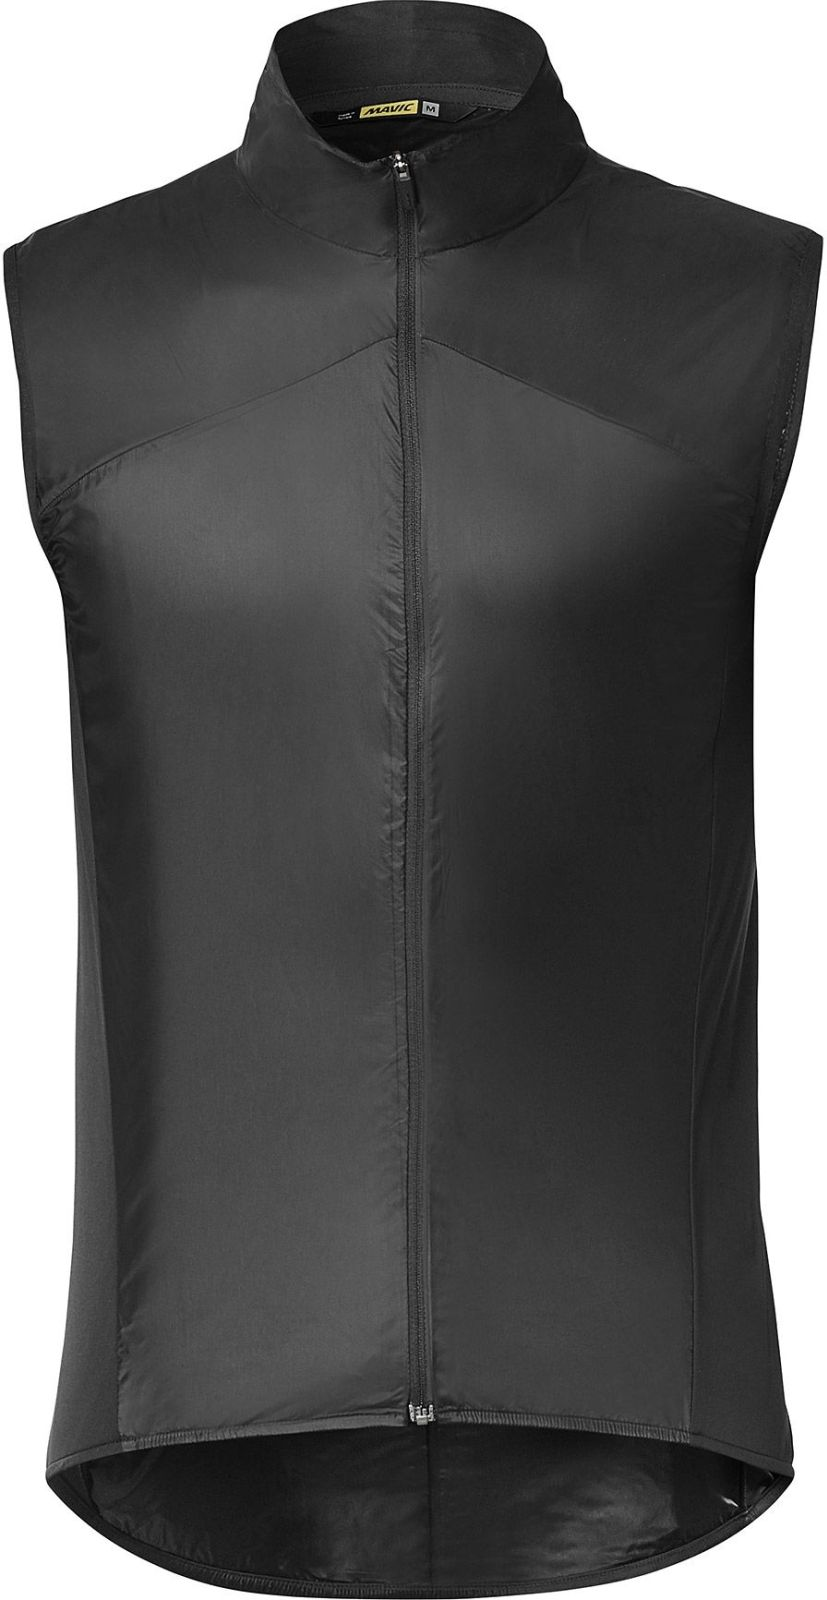 Mavic Sirocco SL Vest - Black XL